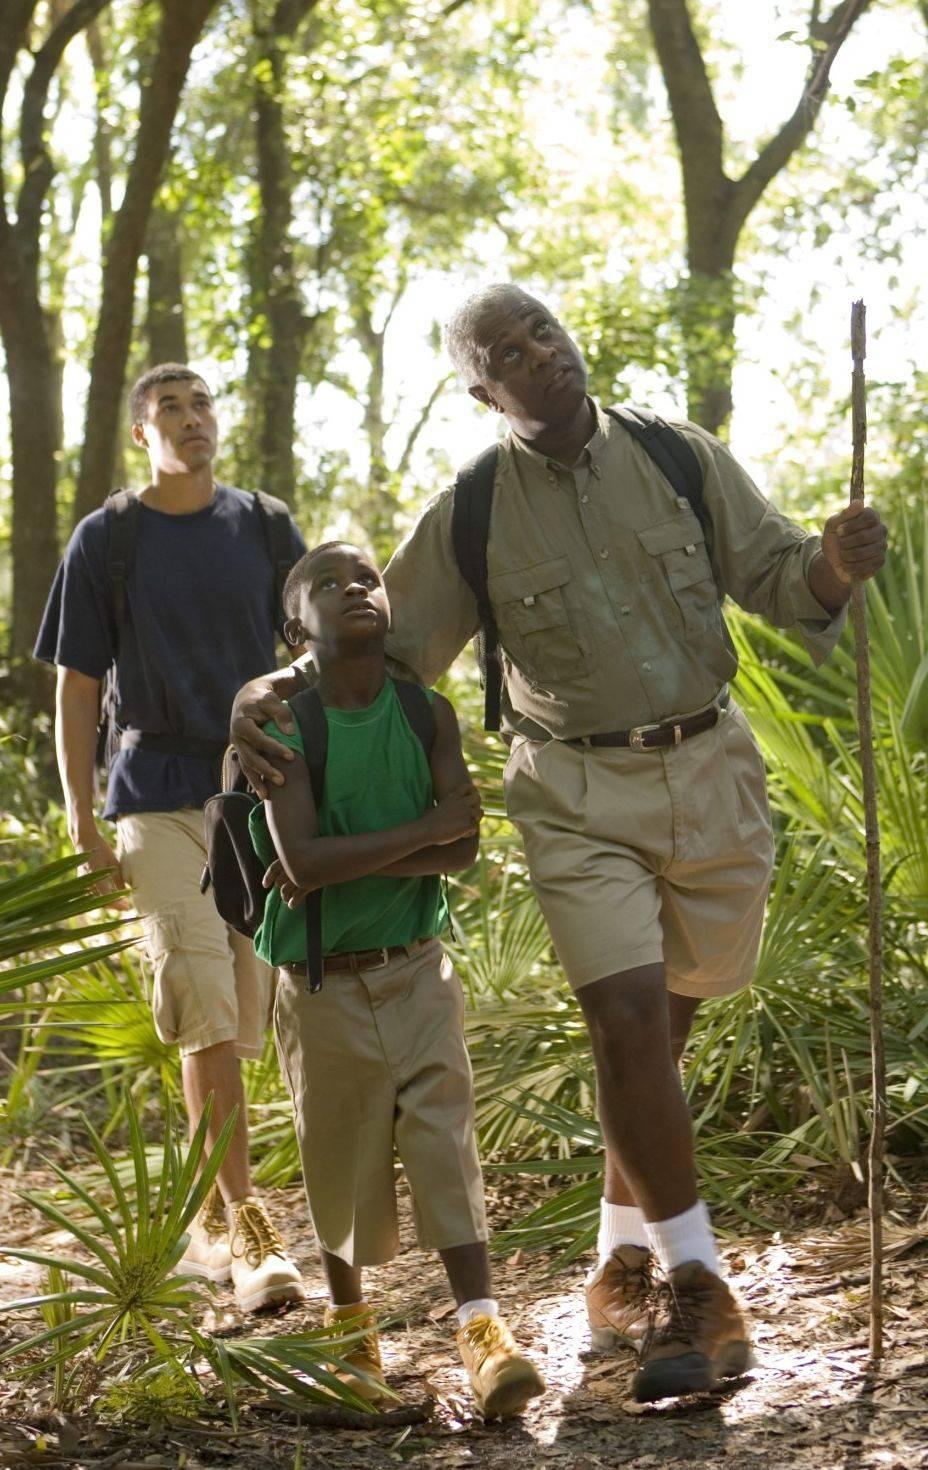 Going for a hike can create a family bond and the physical activity benefits everyone involved.